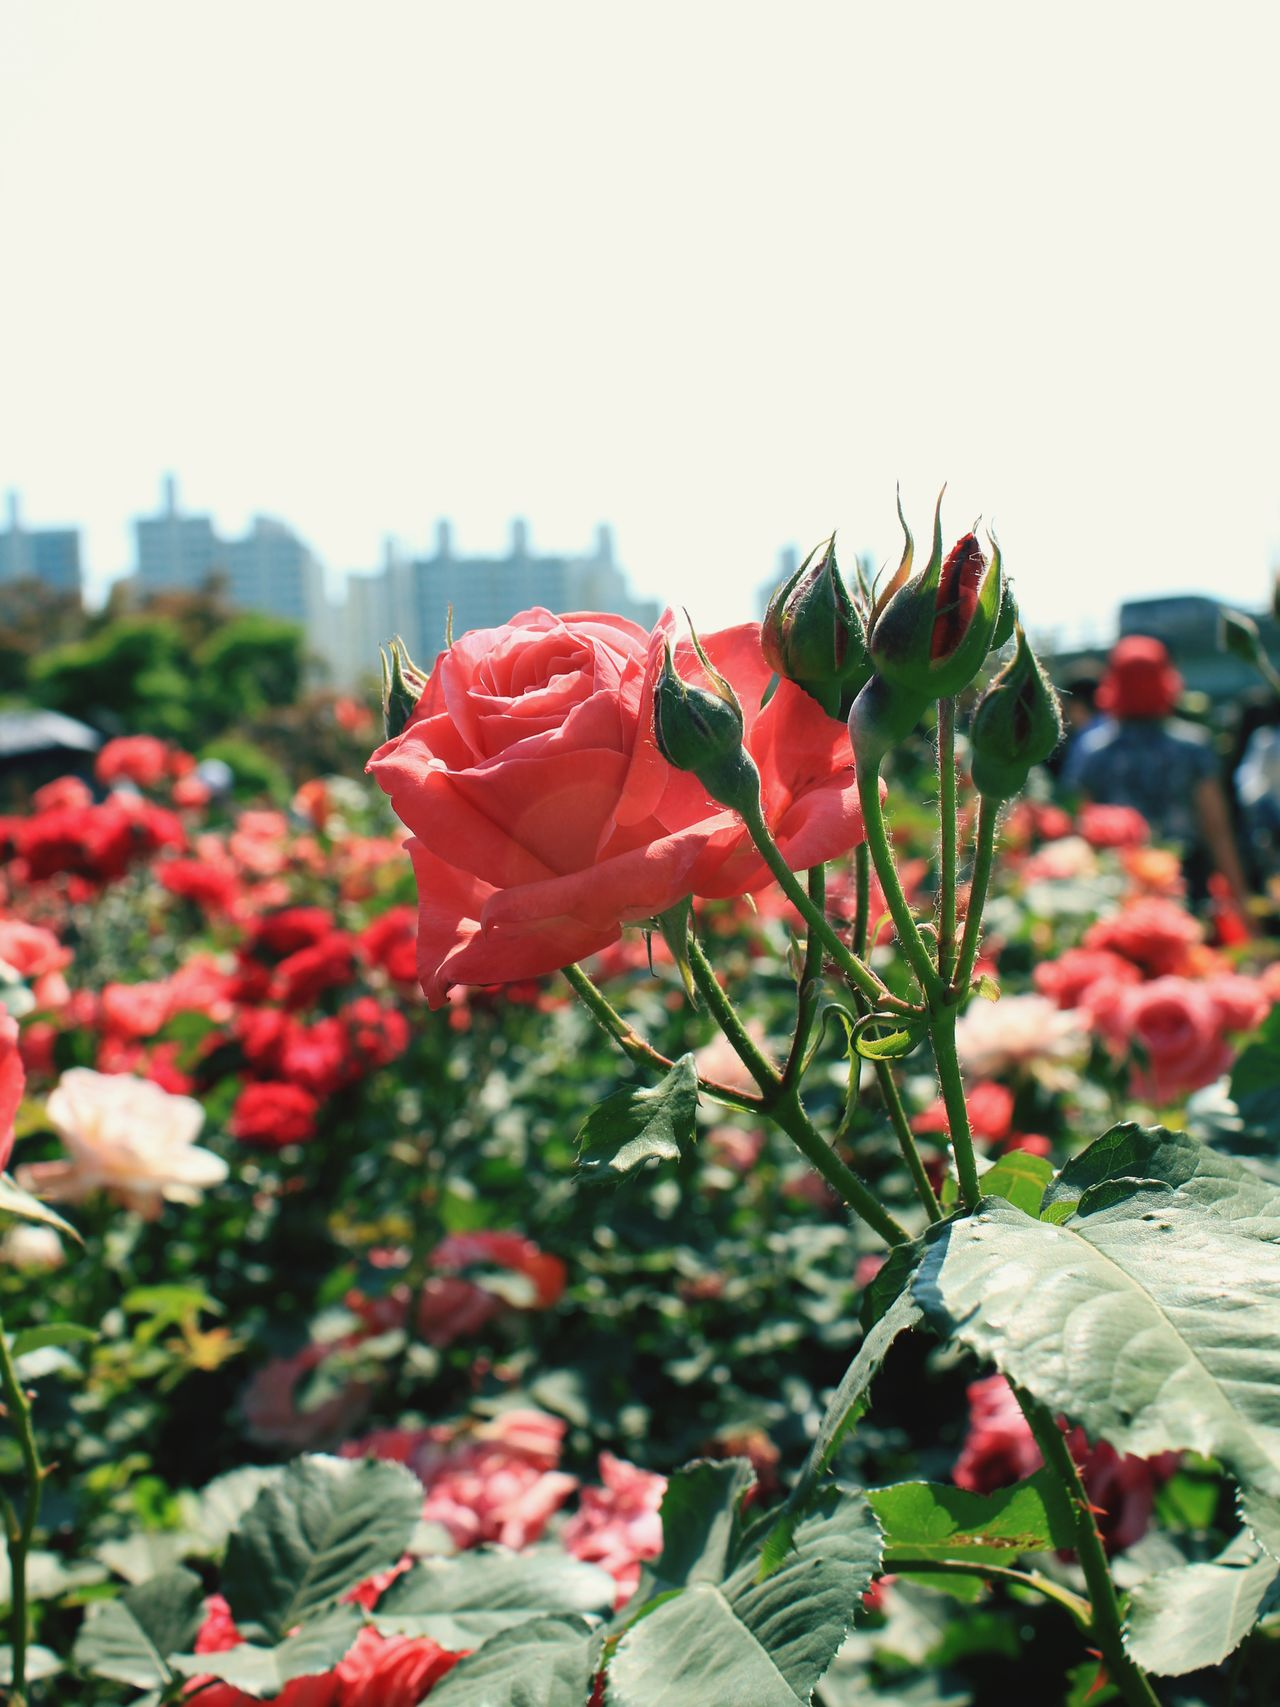 Flower Nature Pink Color Rose - Flower No People Plant Red Outdoors Beauty In Nature Day Close-up Leaf Growth Springtime Freshness Flower Head Fragility Sky EyeEmBestPics Photo Someday Photography EyeEmNewHere Landscape Festival